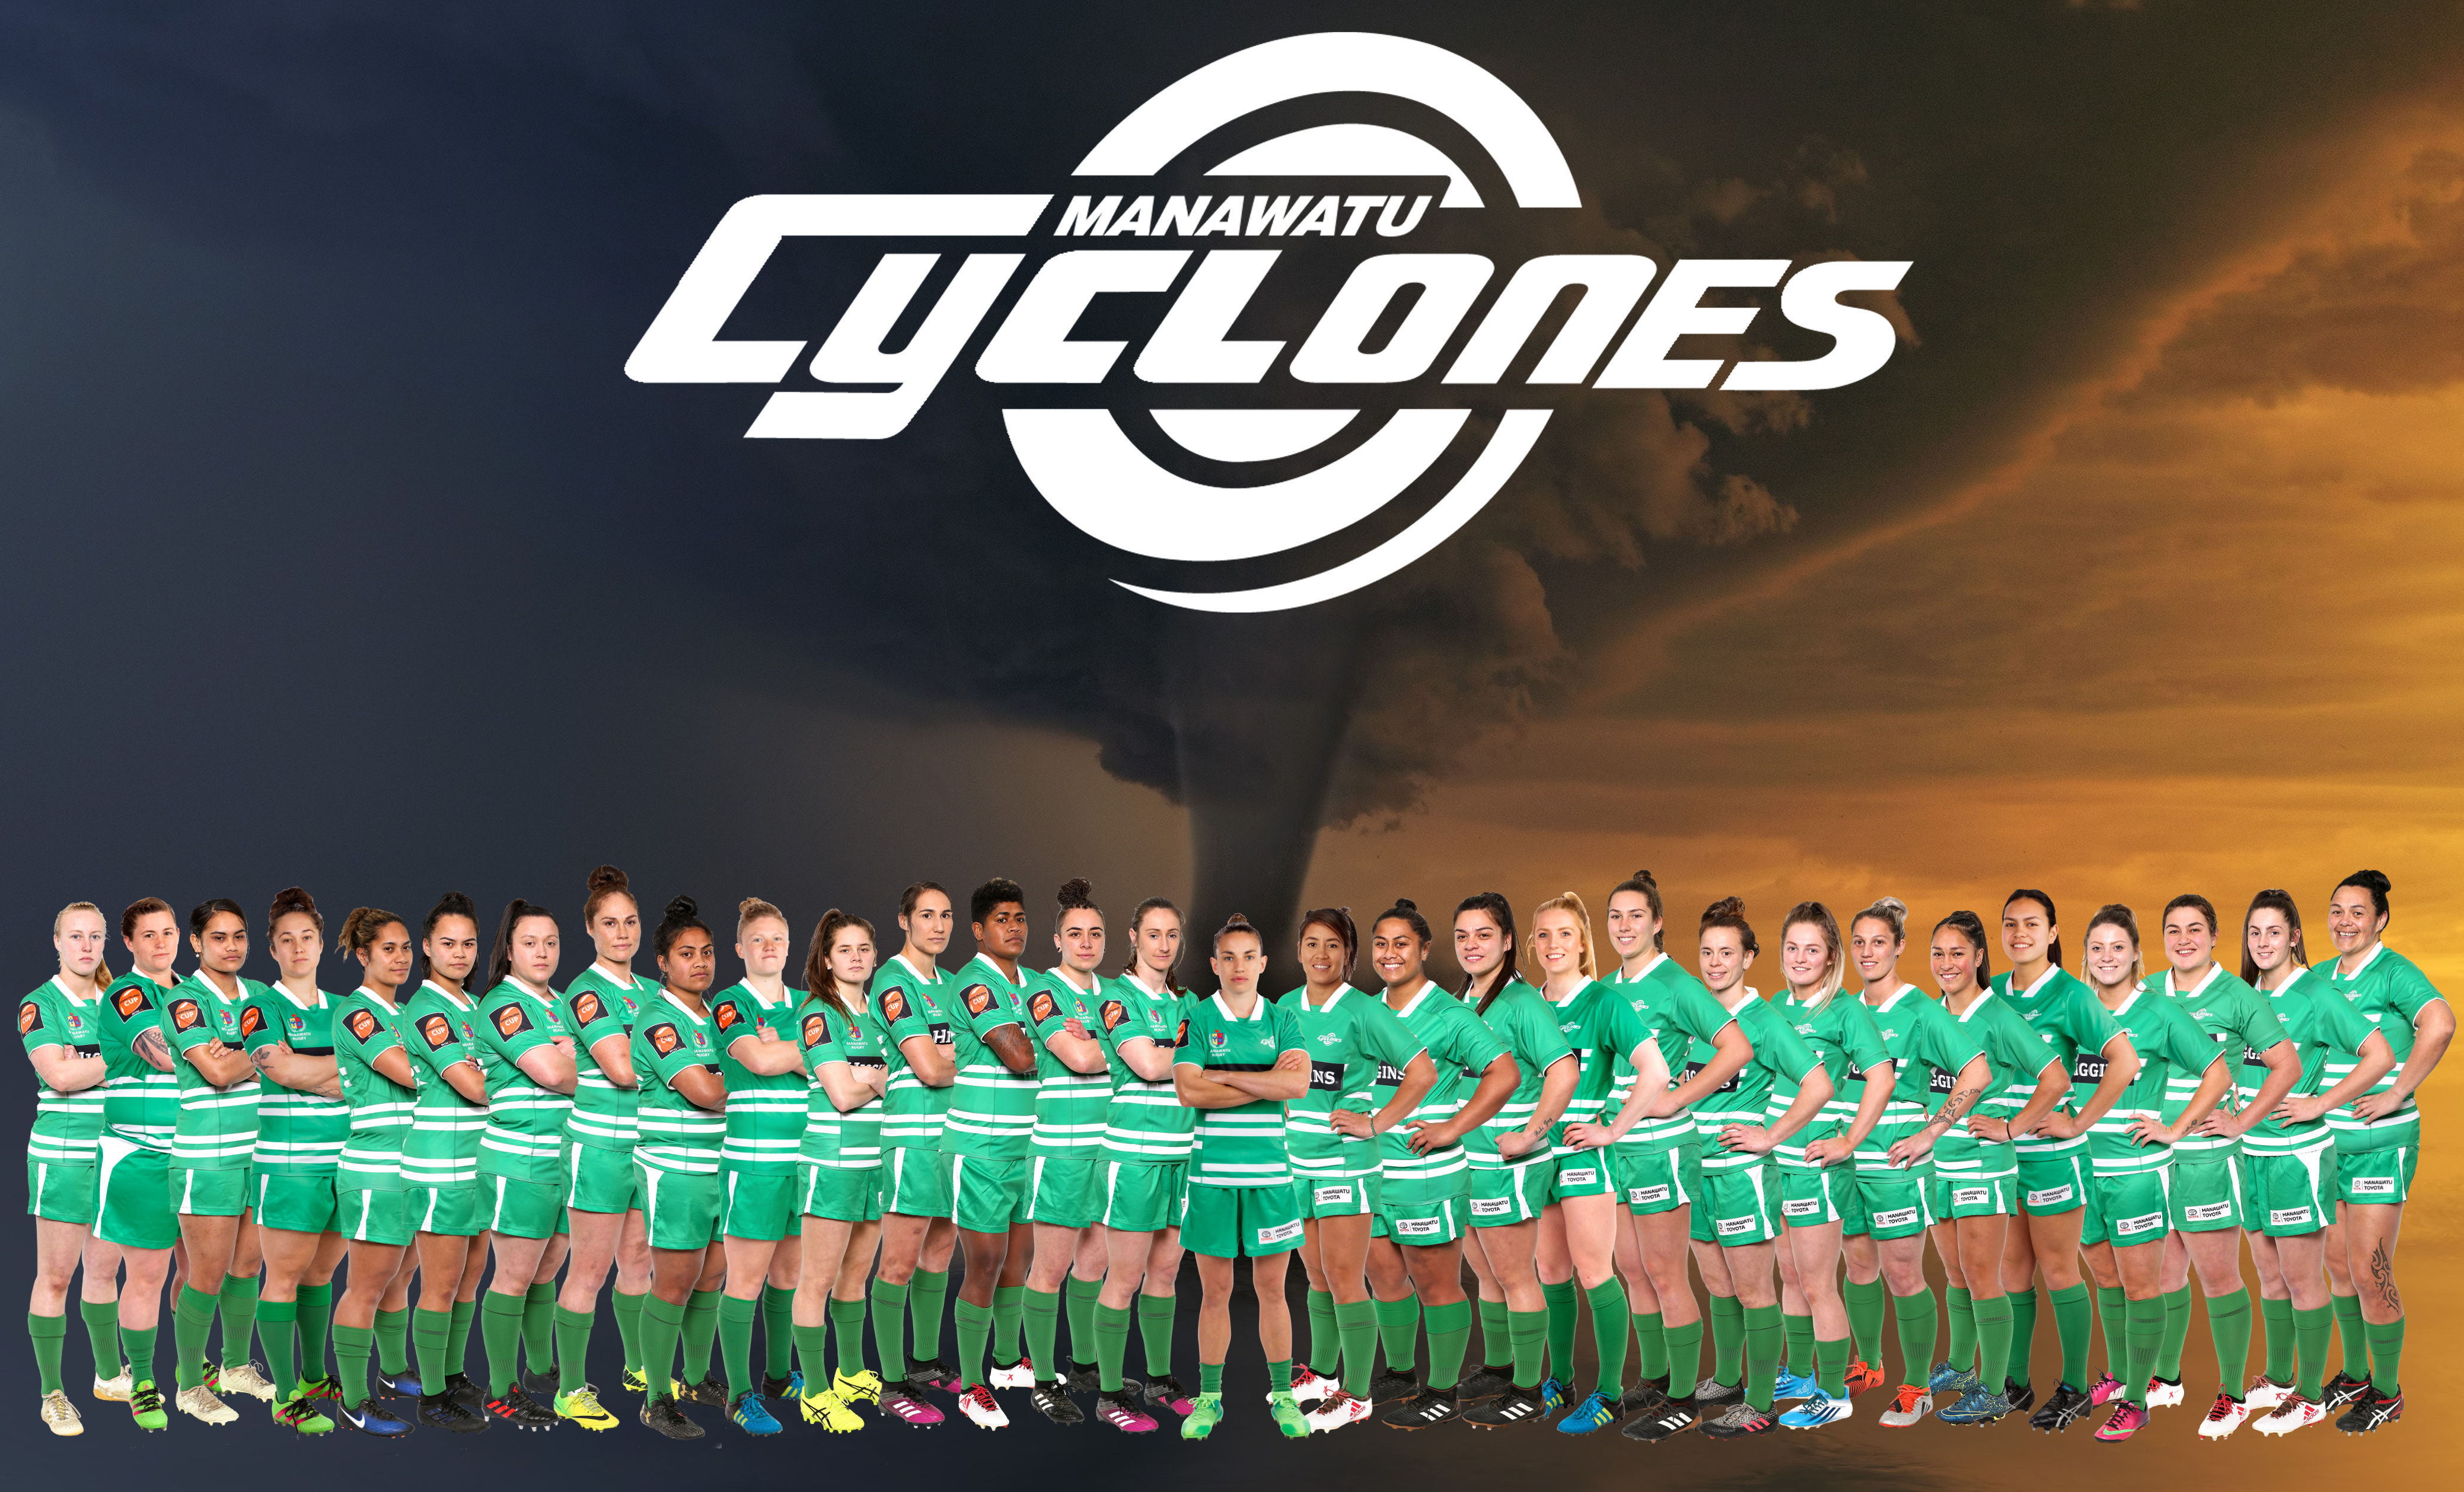 Cyclones Rugby